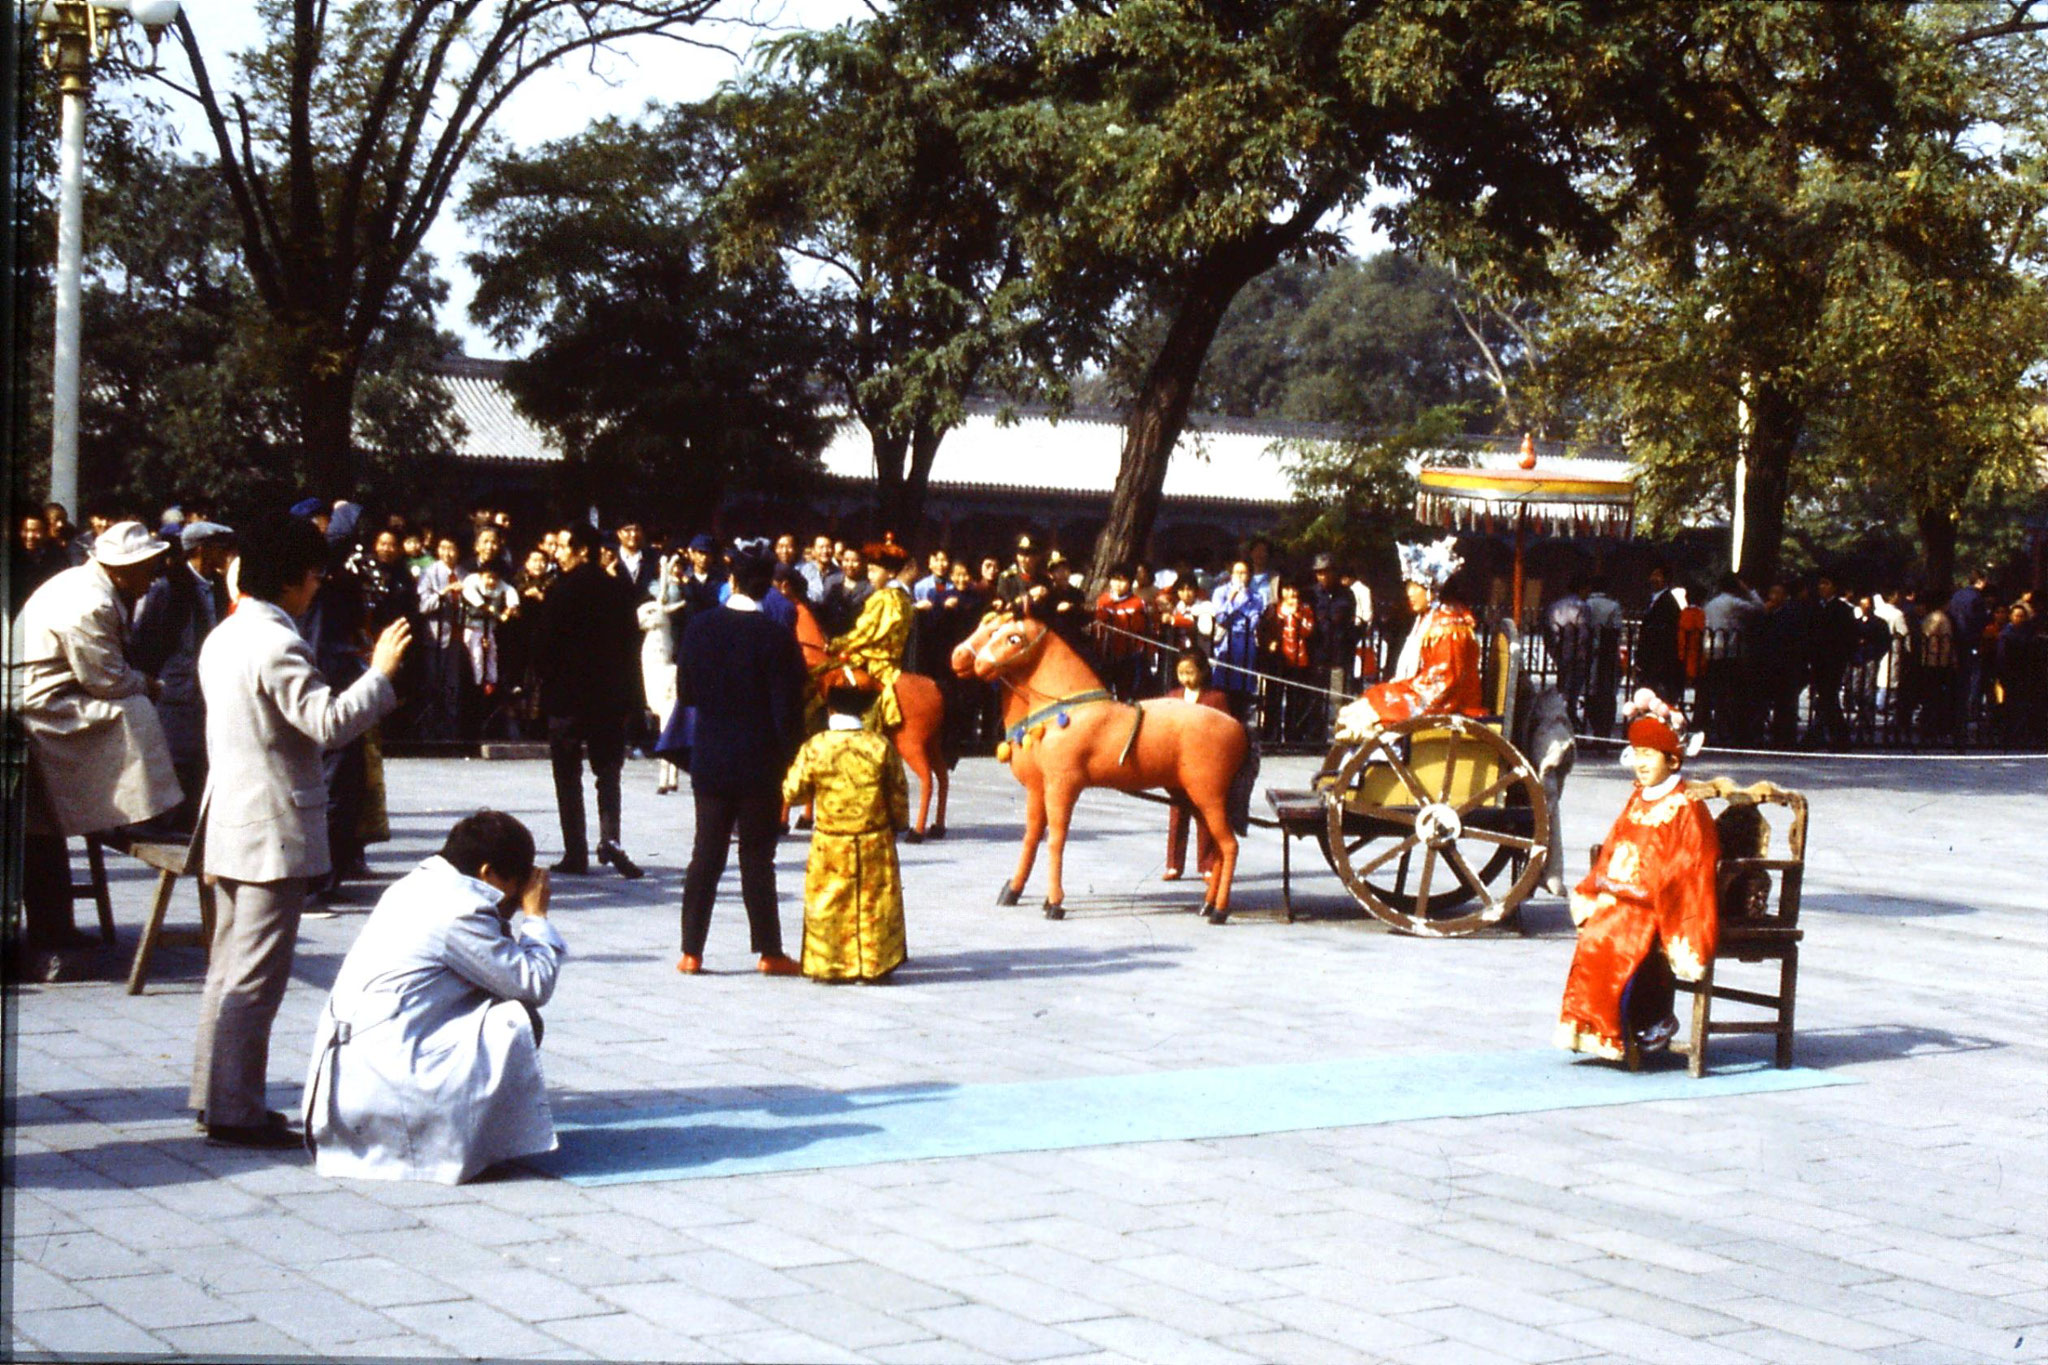 30/10/1988: 27: costume photos between Tiananmen Gate and Forbidden City